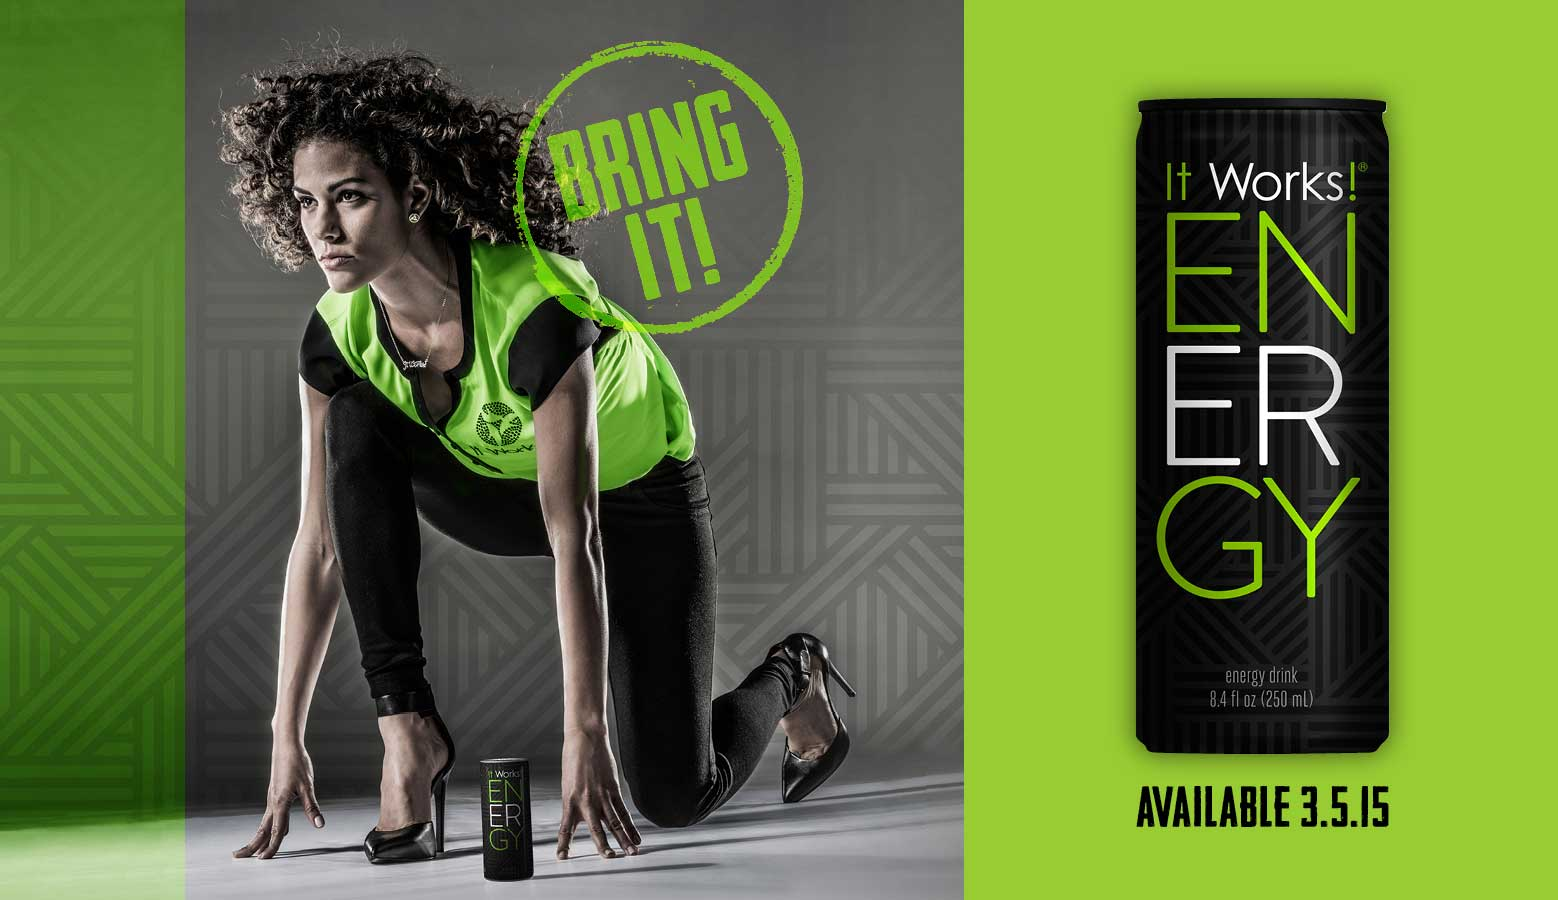 IT WORKS ENERGY DRINK